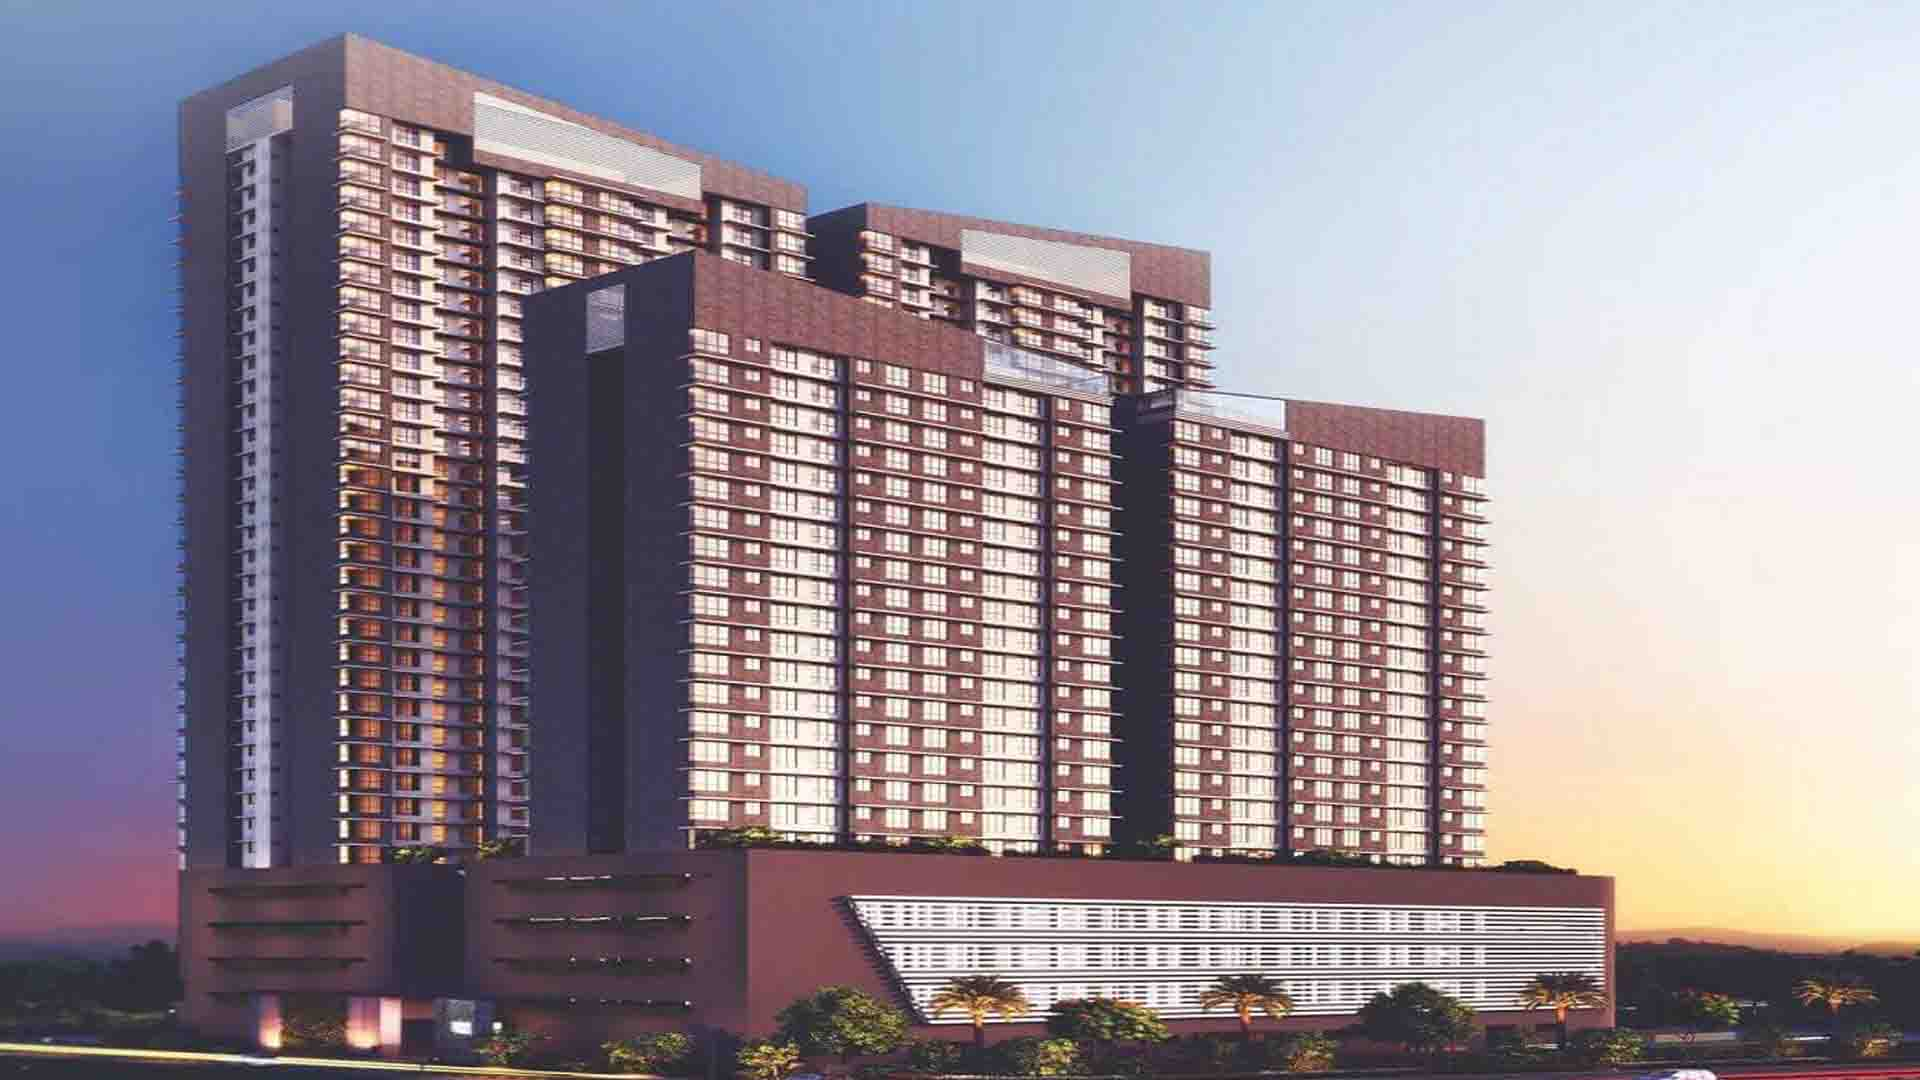 No Developer Can Book A Flat Without Project Registration, Rules Maharashtra REAT